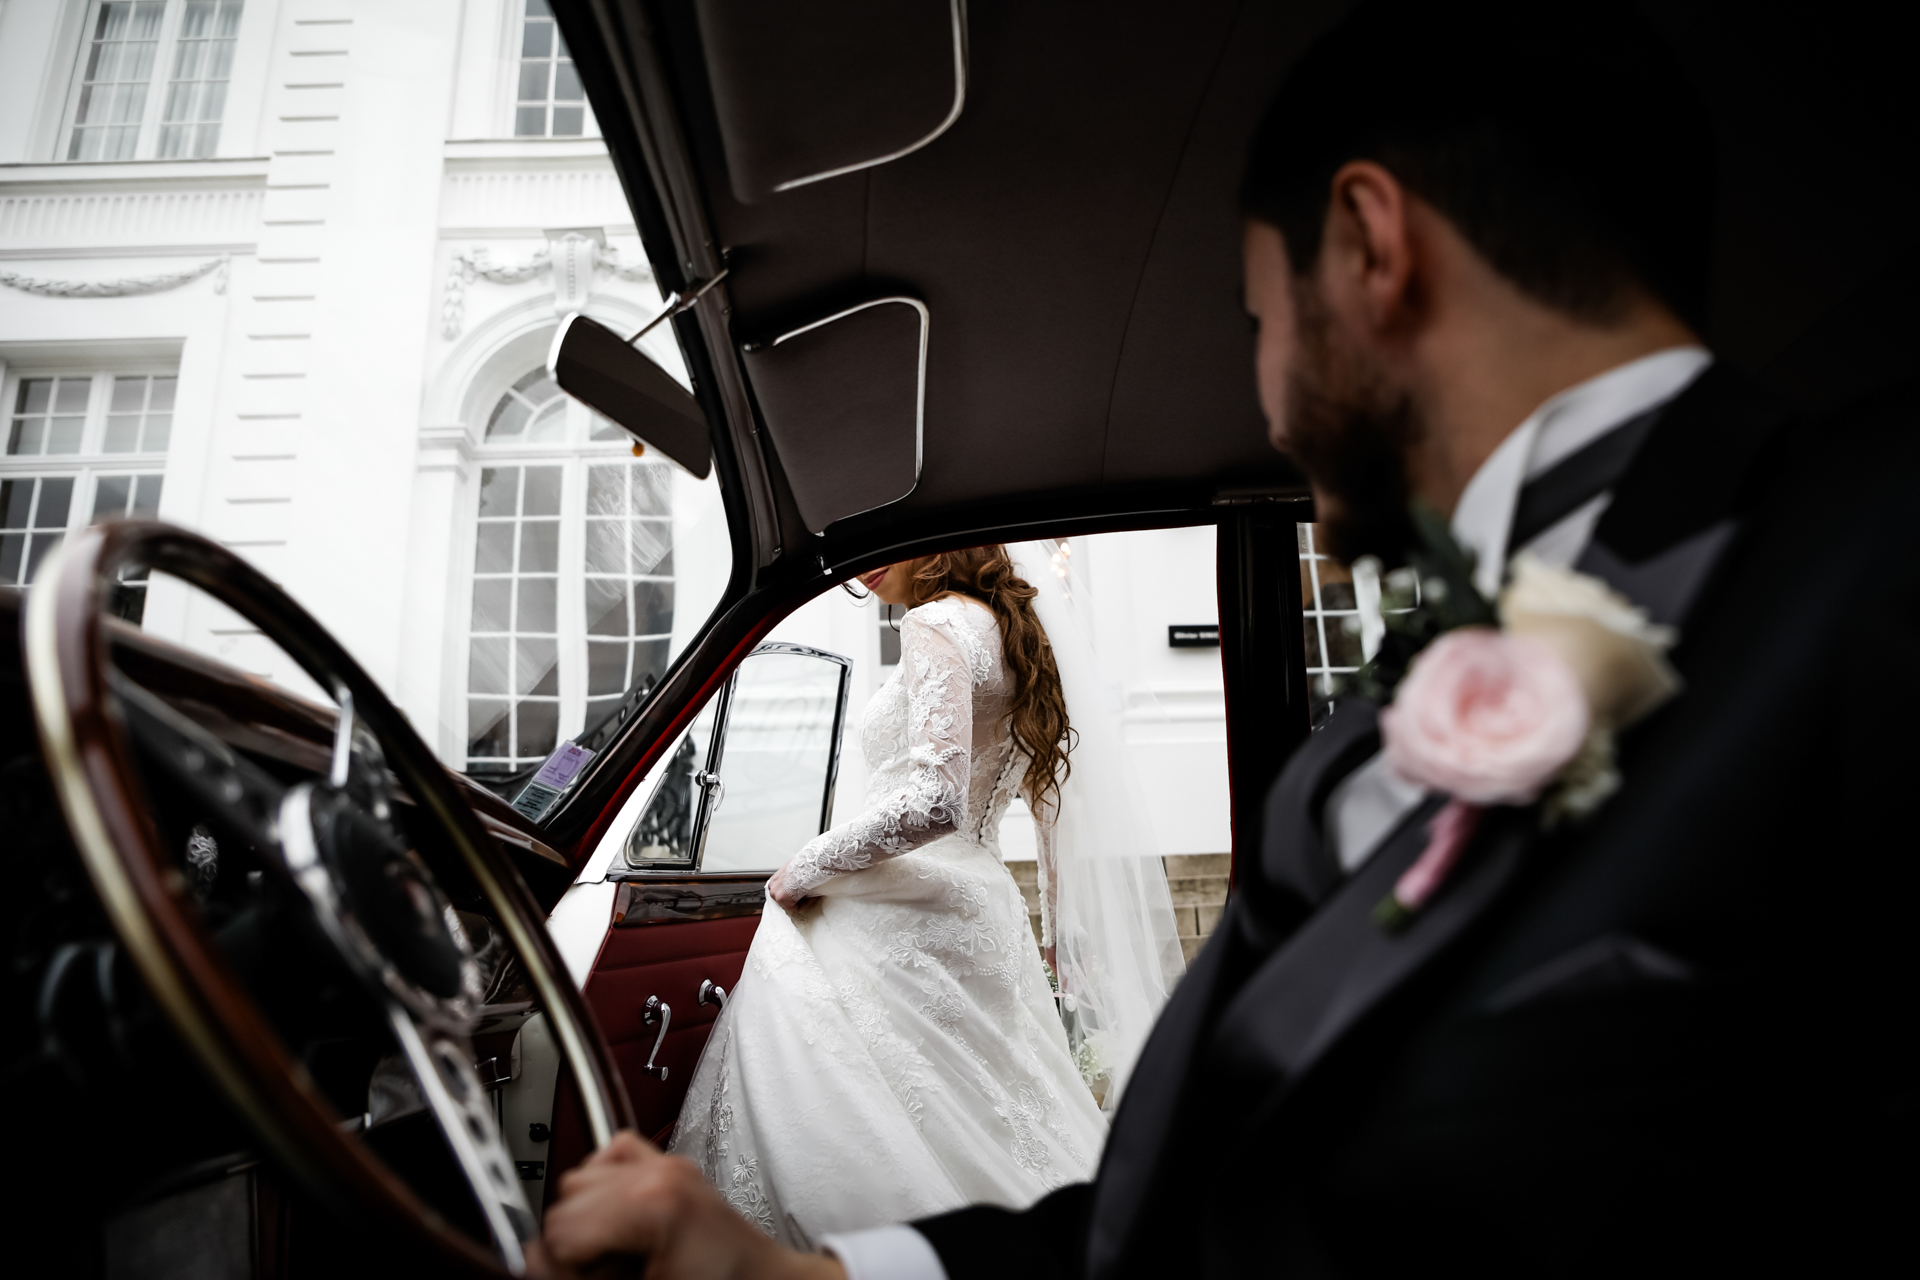 Julien Laurent Georges, of , is a wedding photographer for Lille - France